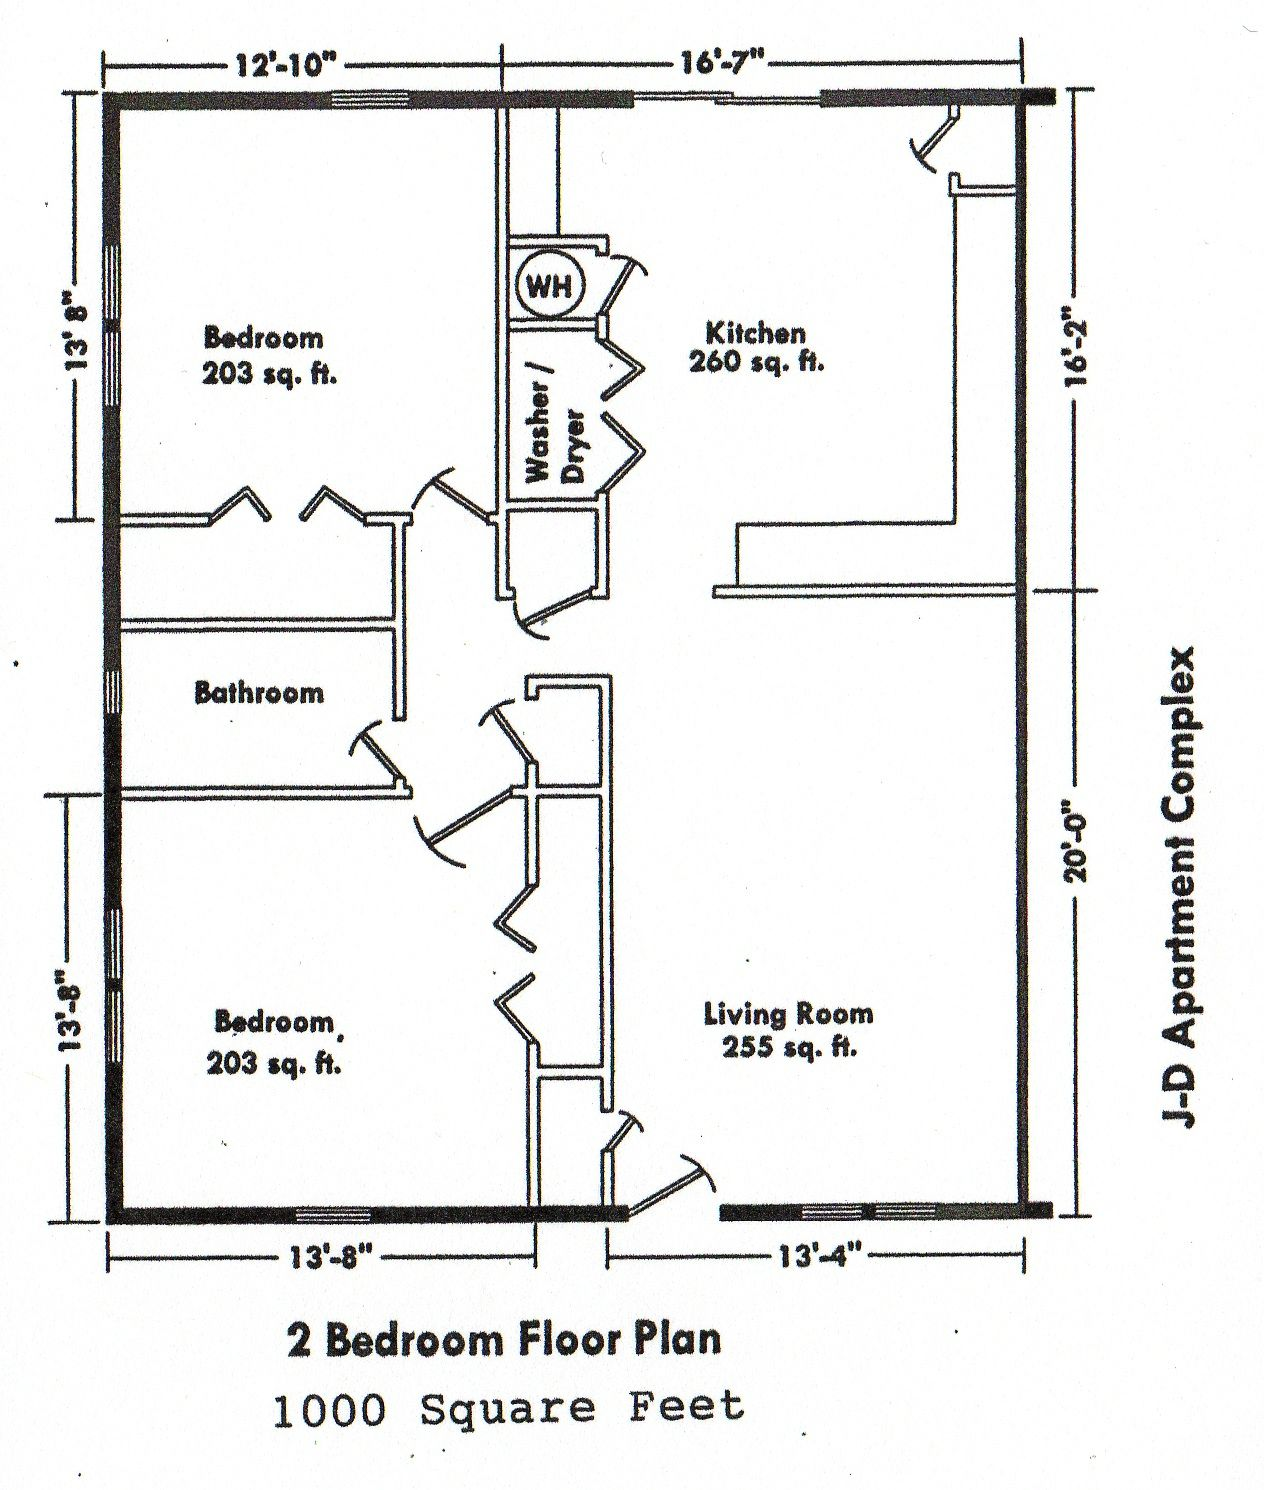 Small house floor plans 2 bedrooms master bedroom suite home addition plans house plans Master suite addition behind garage